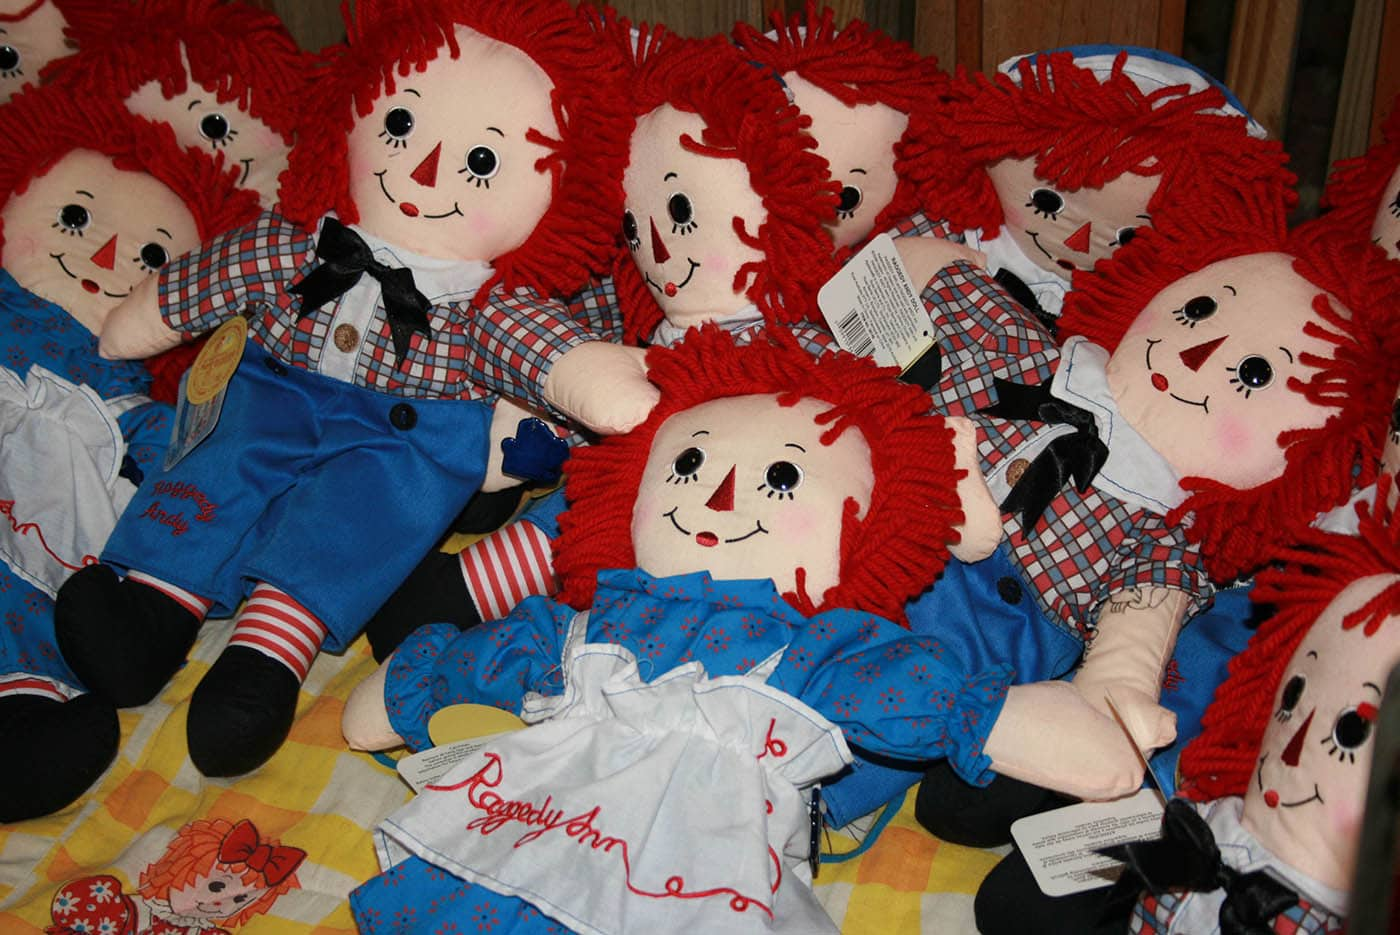 ILLINOIS ROAD TRIP AND ROADSIDE ATTRACTIONS: RAGGEDY ANN MUSEUM IN ARCOLA